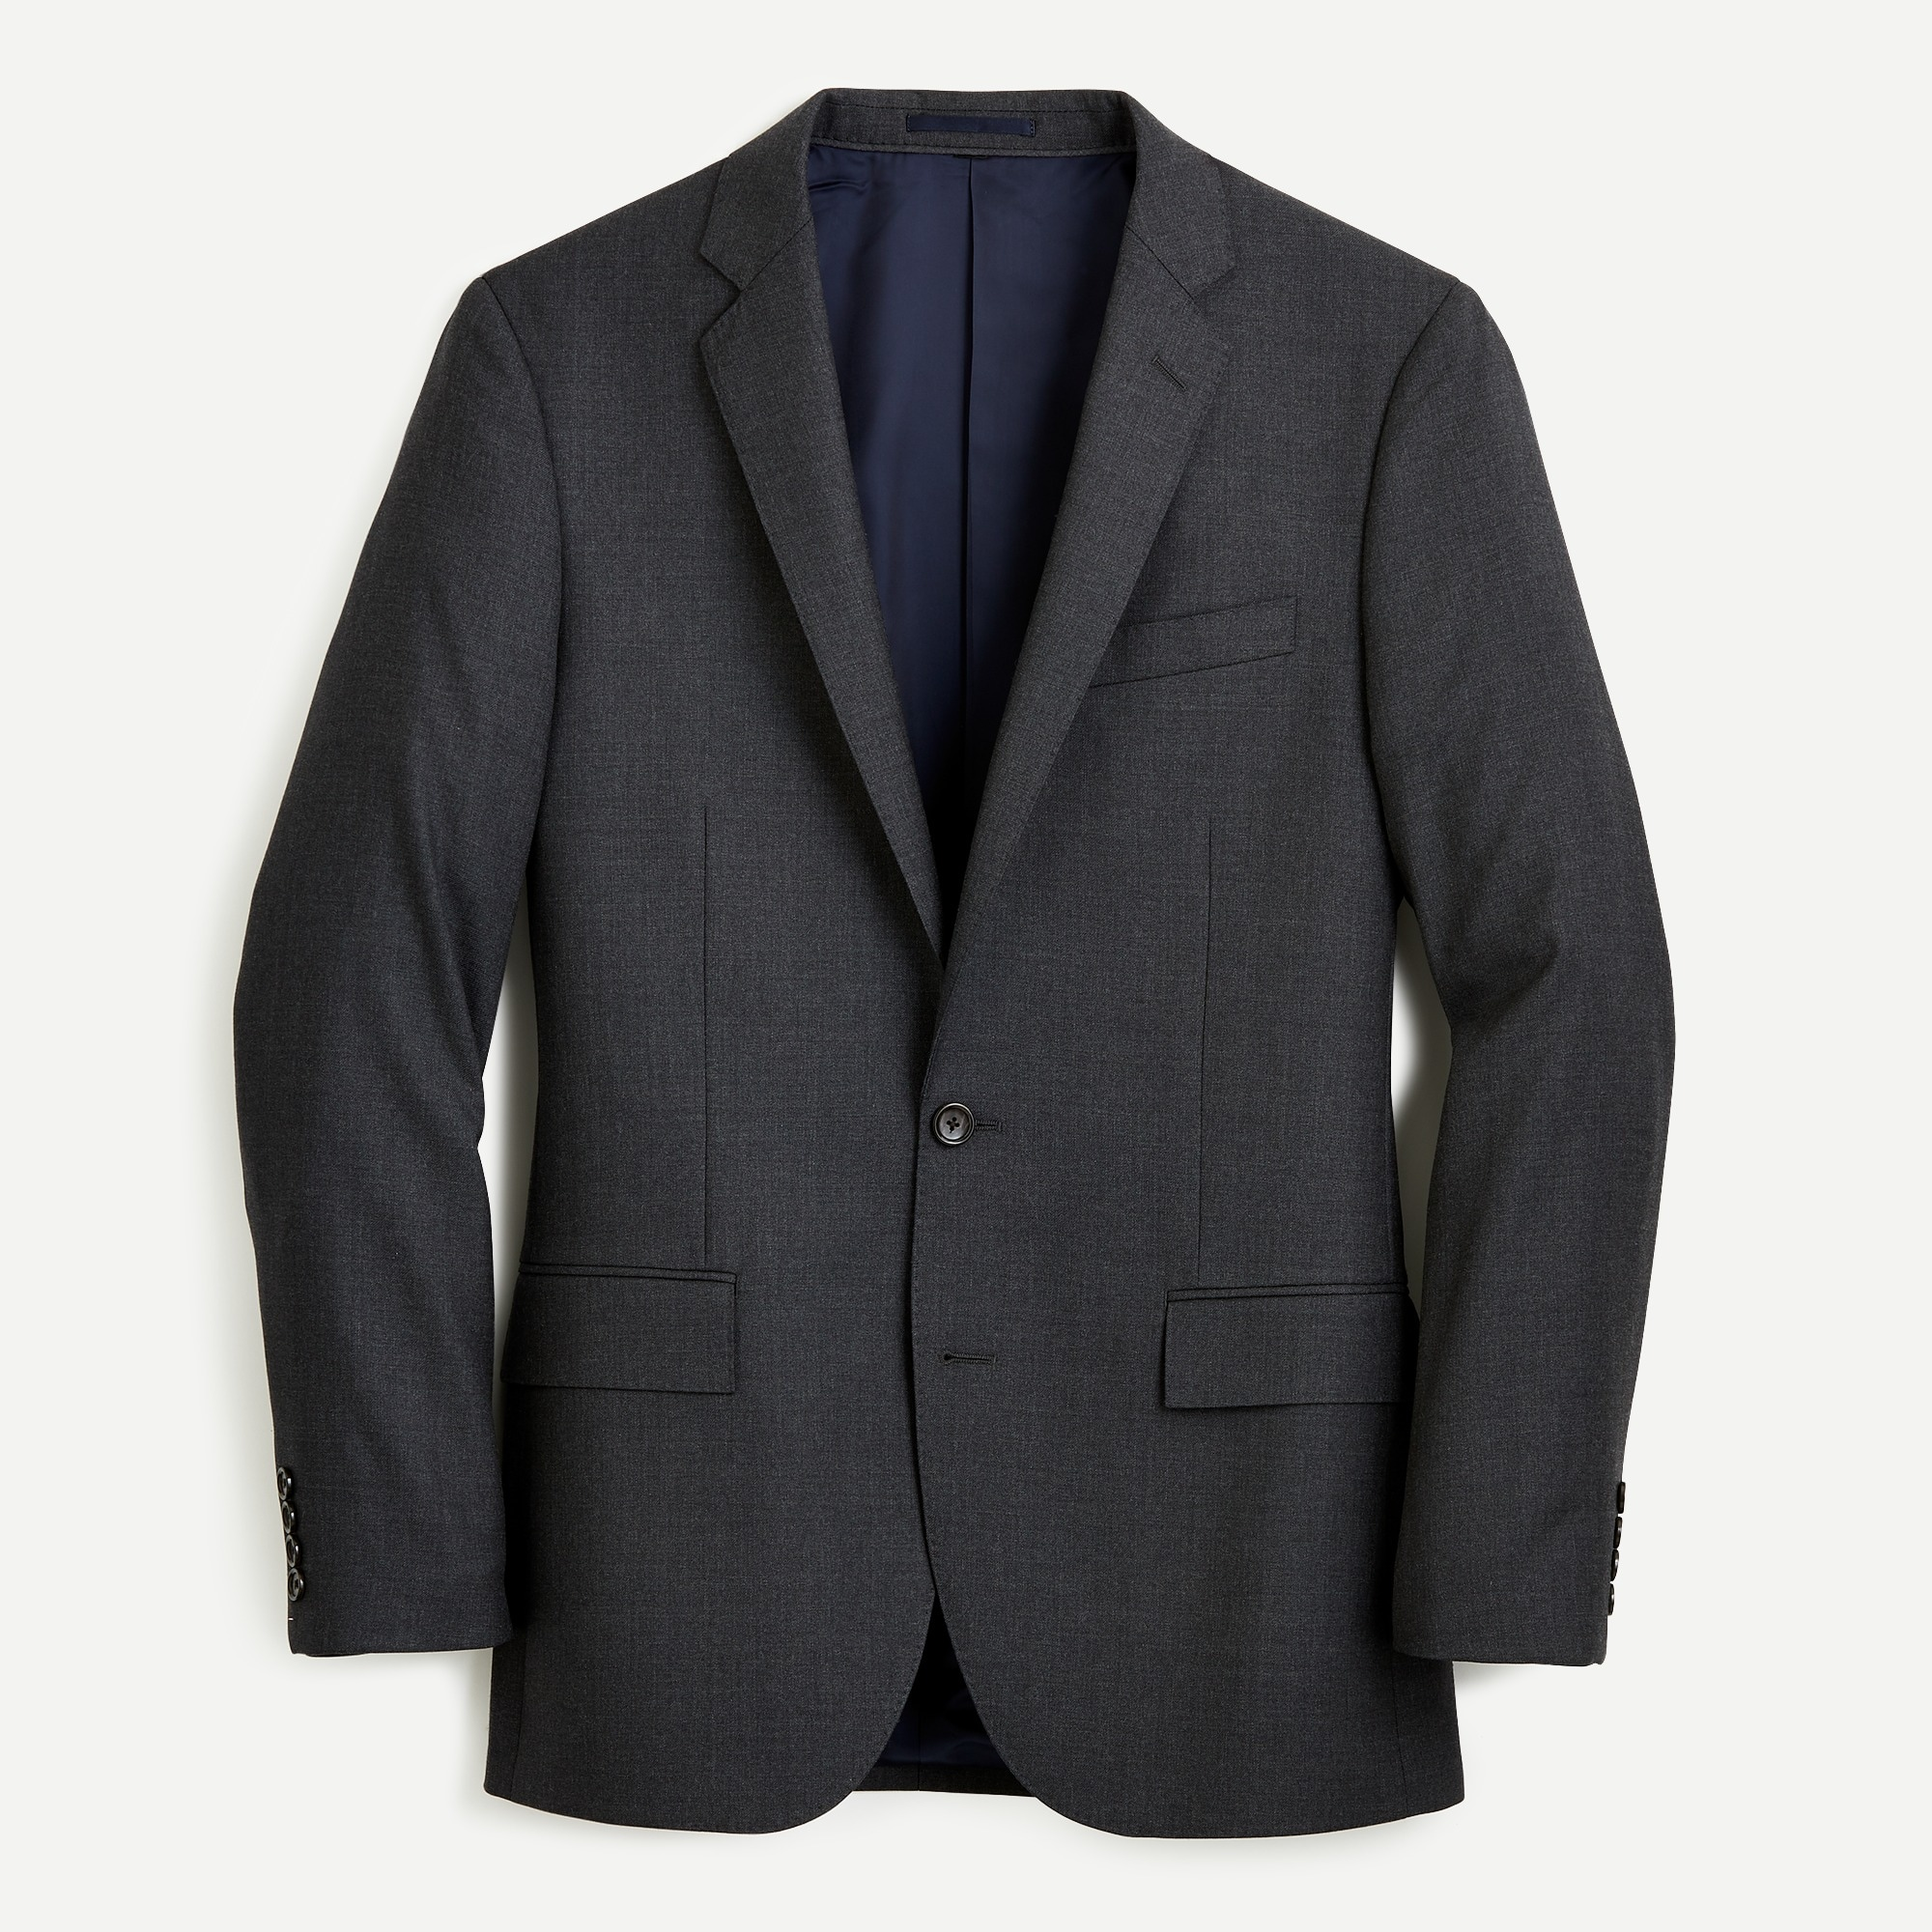 Image 2 for Ludlow Slim-fit suit jacket with double vent in charcoal American Wool